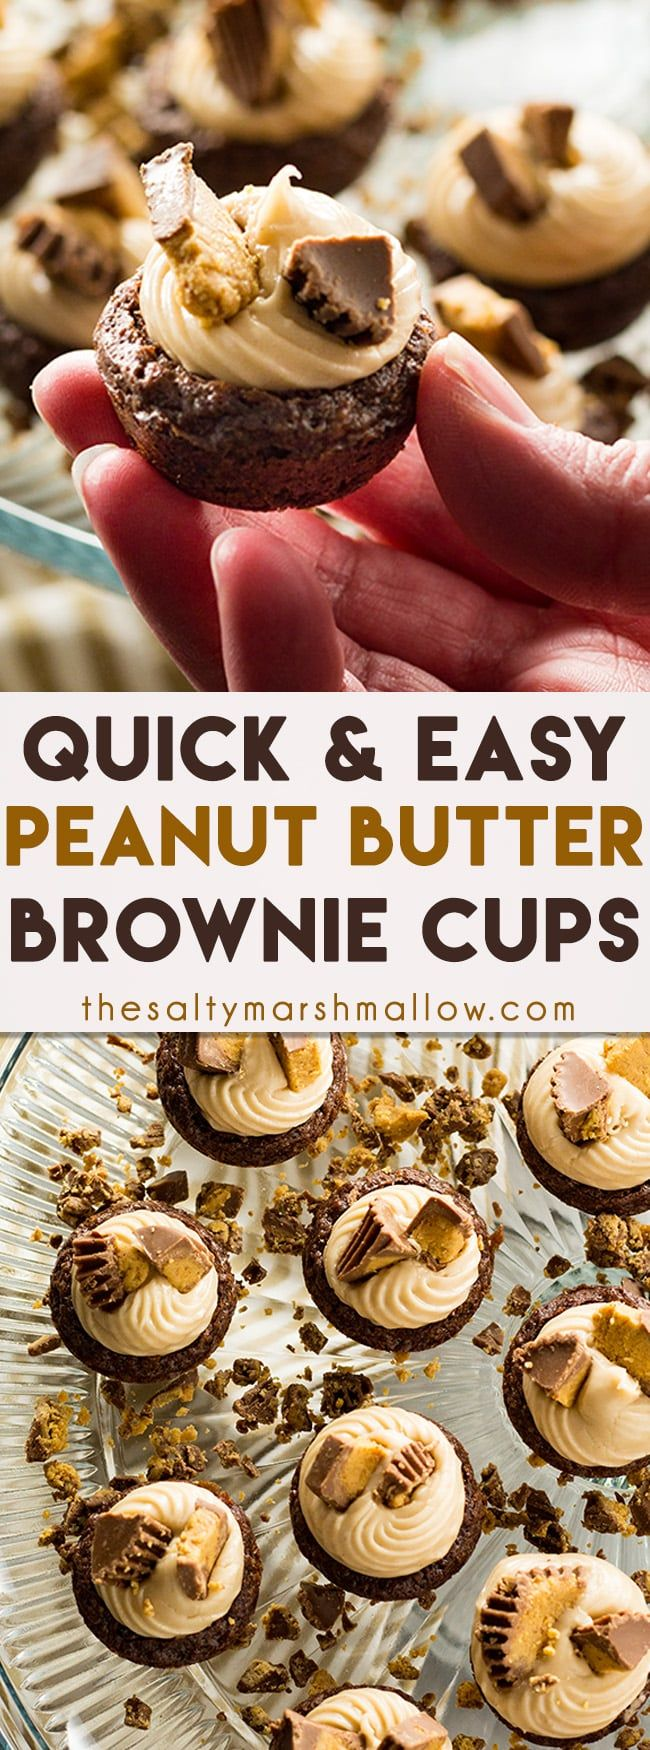 Peanut Butter Brownie Cups - These bite sized brownie cups couldn't be easier to make or more fun to eat!  Brownie cups that are filled with a creamy peanut butter filling for a decadent, poppable treat that will please a crowd! #ad #creamernation #internationaldelight